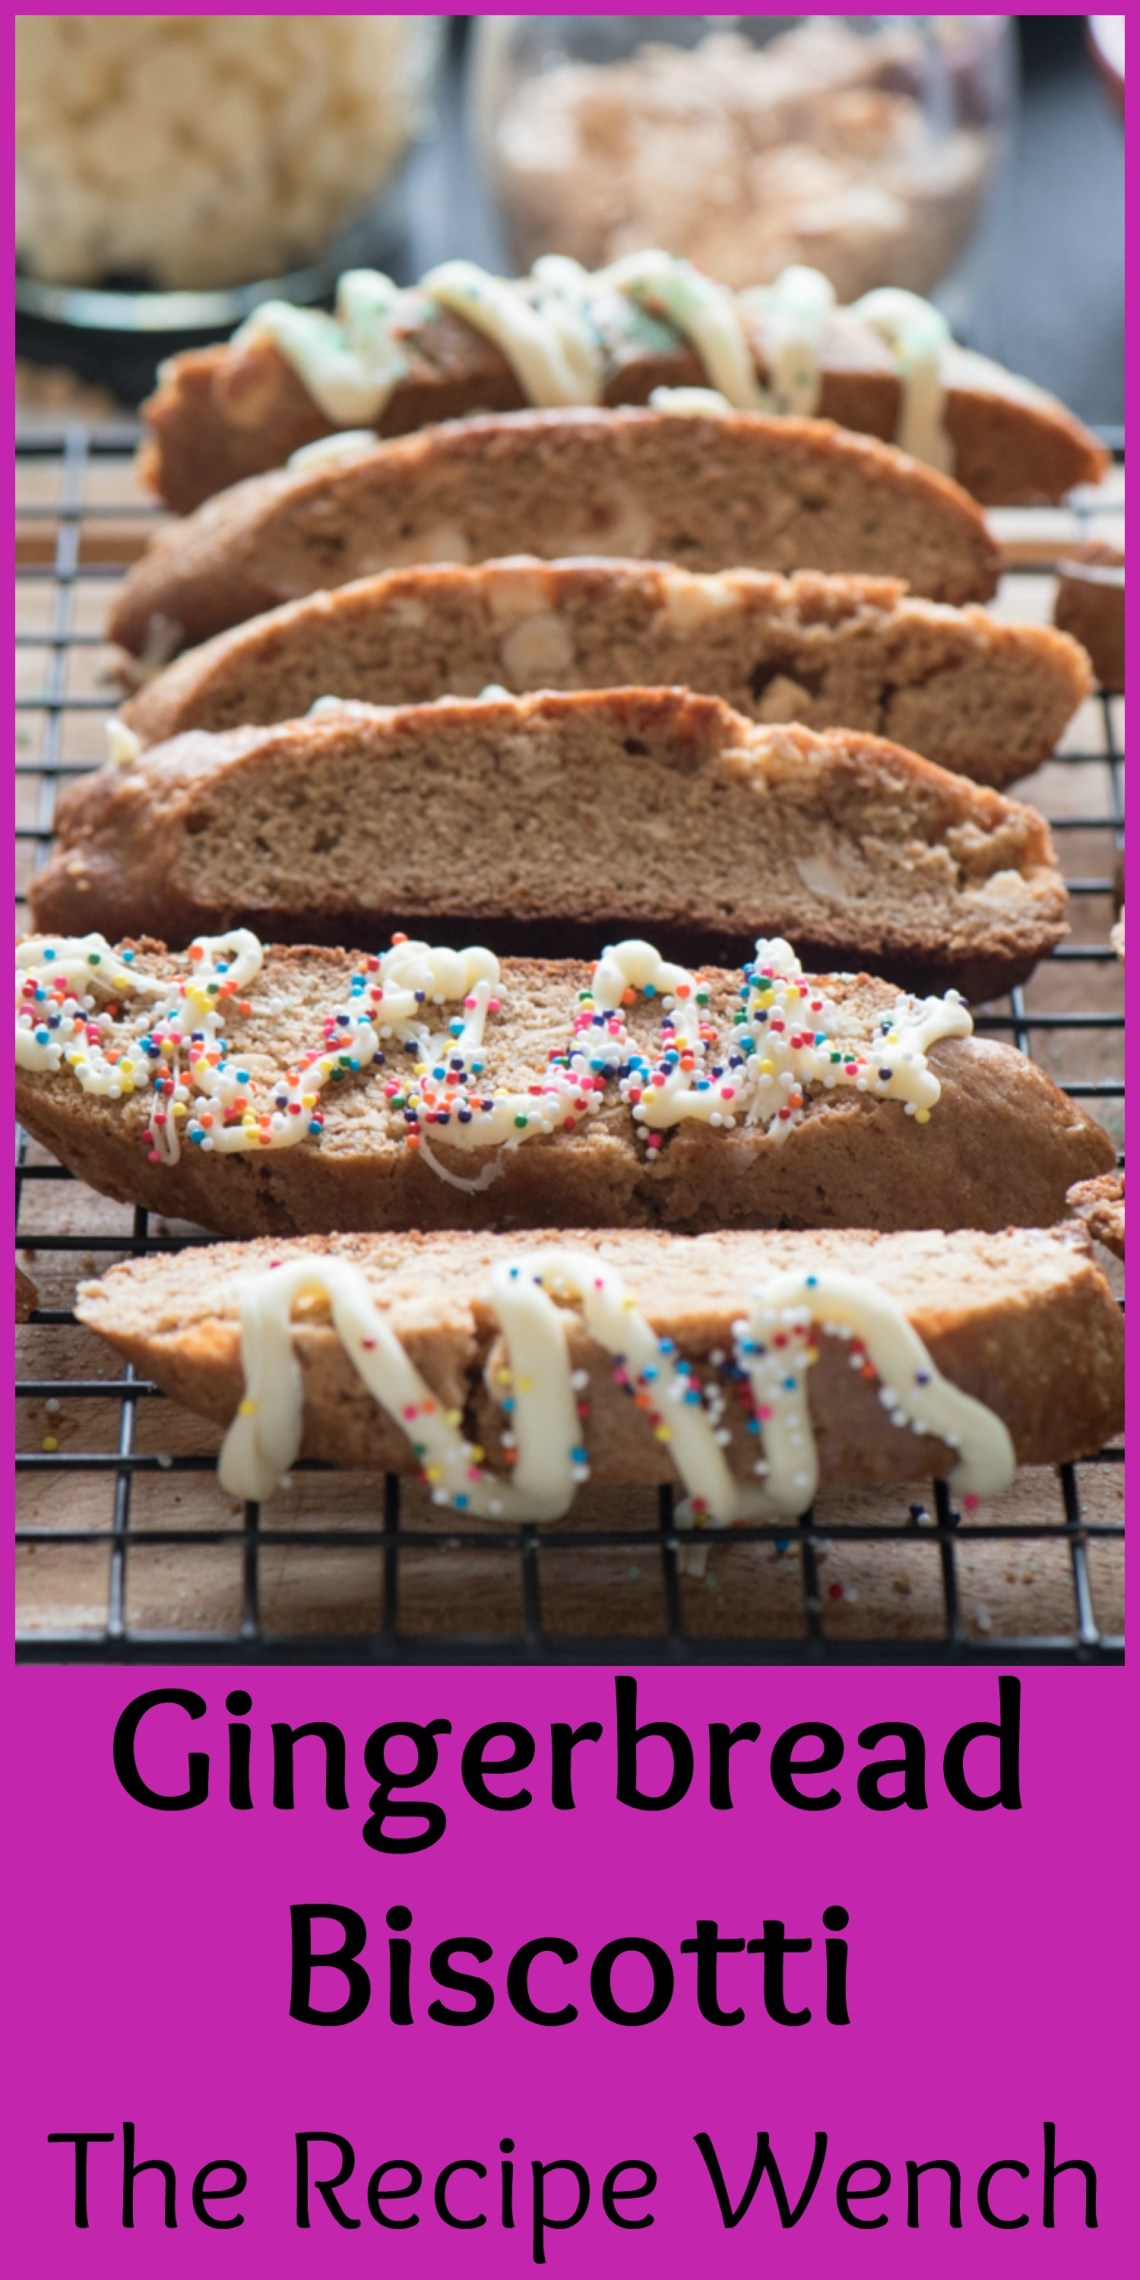 Fun, festive and tasty gingerbread white chocolate biscotti with white chocolate. Pour yourself a glass of milk or cup of coffee and dunk away! | The Recipe Wench